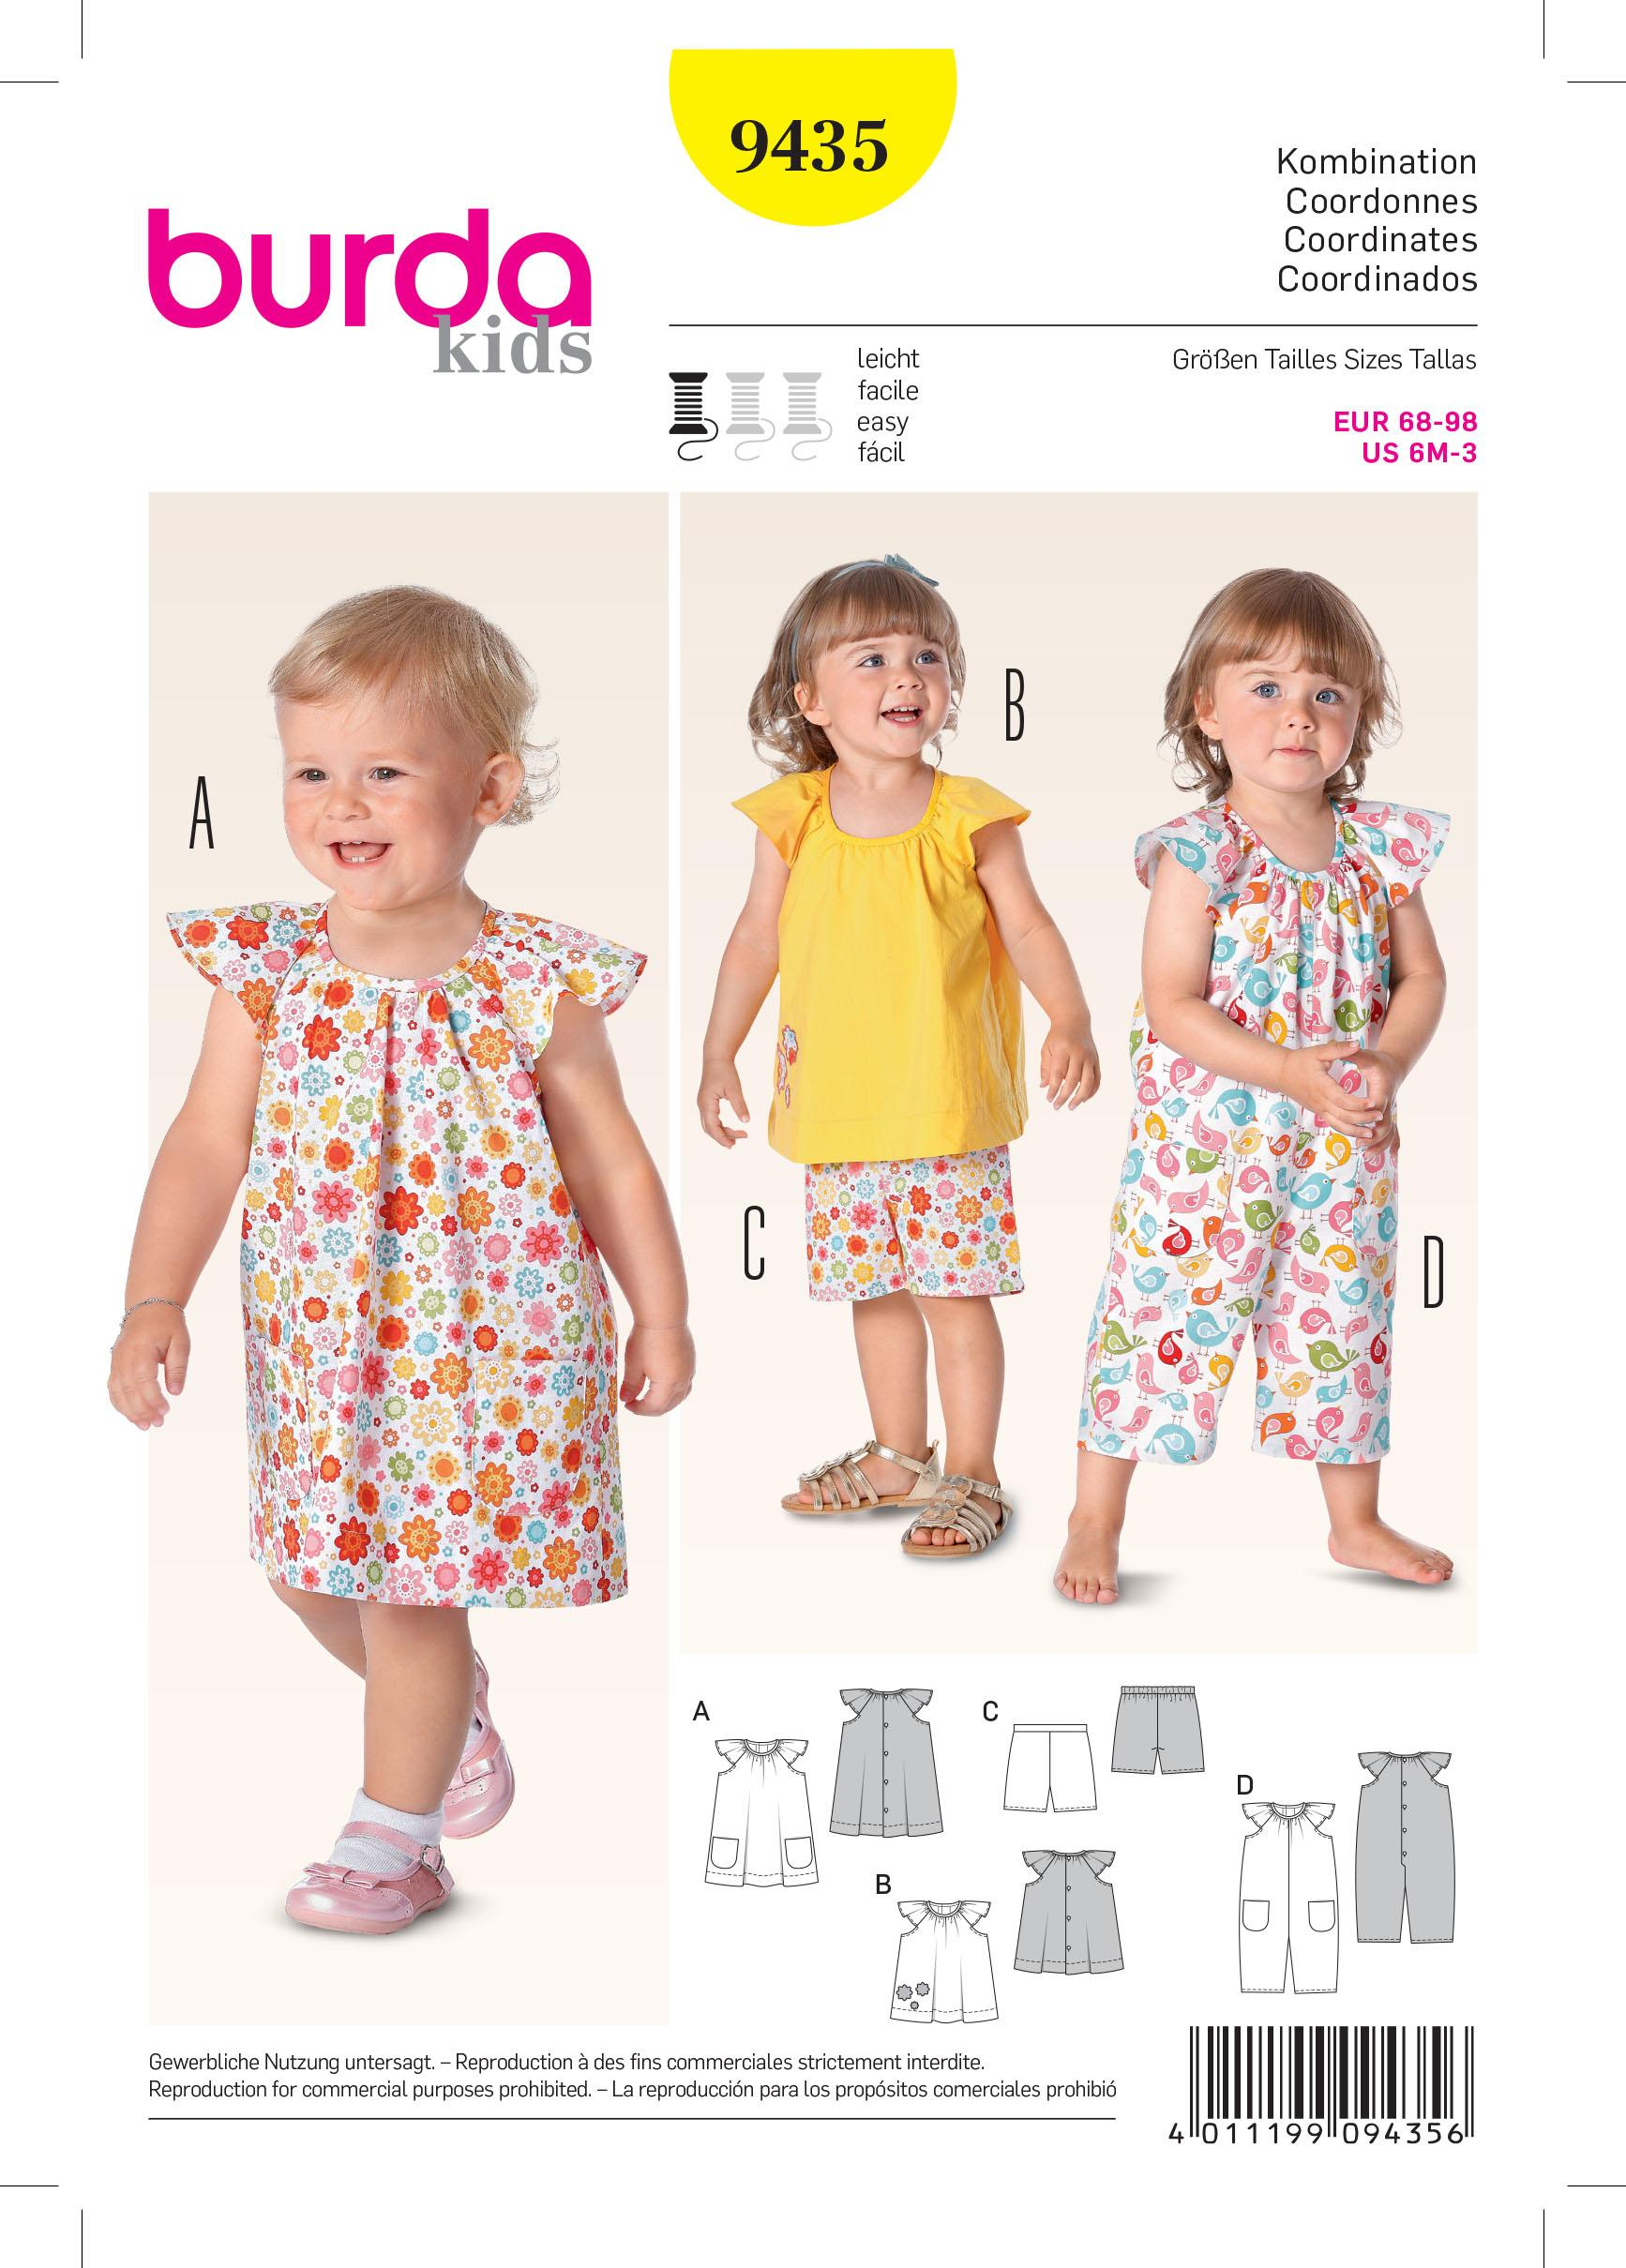 Burda B9435 Burda Baby Sewing Pattern